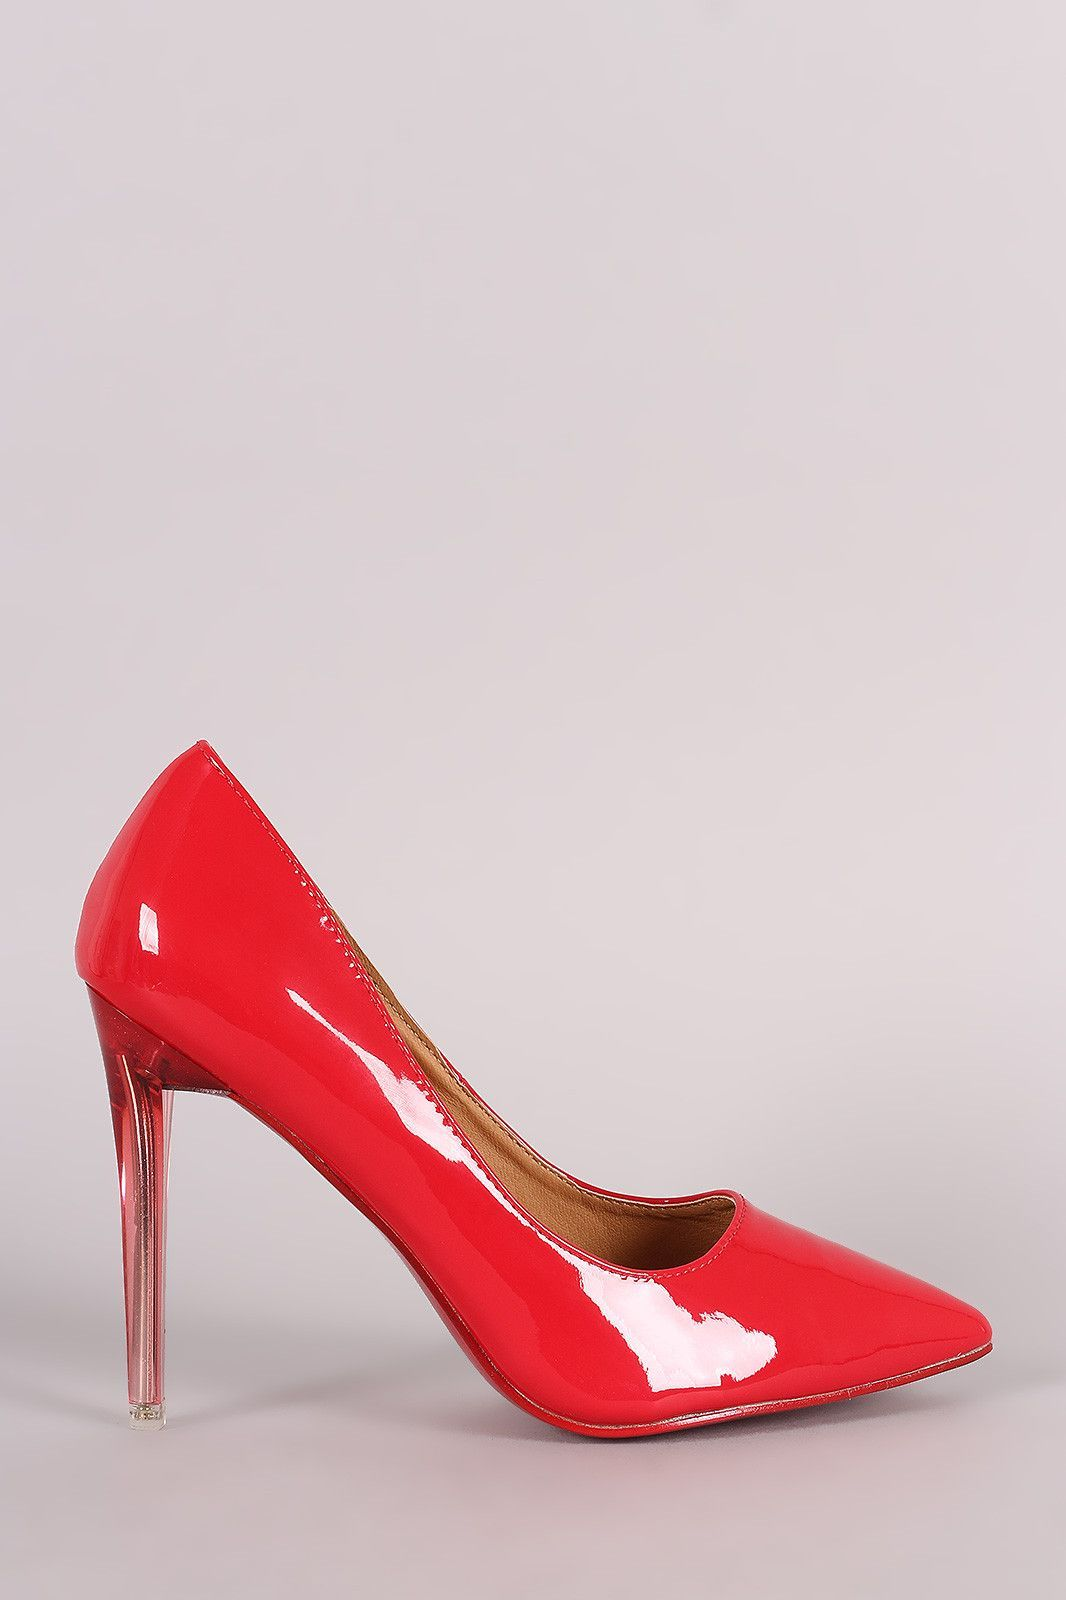 """This alluring  pump  features a pointy toe, glossy vegan patent leather upper, and lucite stiletto heel. Finished with a lightly padded insole and easy slide style.Material: Vegan Patent Leather (man-made)Sole: SyntheticMeasurement Heel Height: 4.25"""" (approx) 